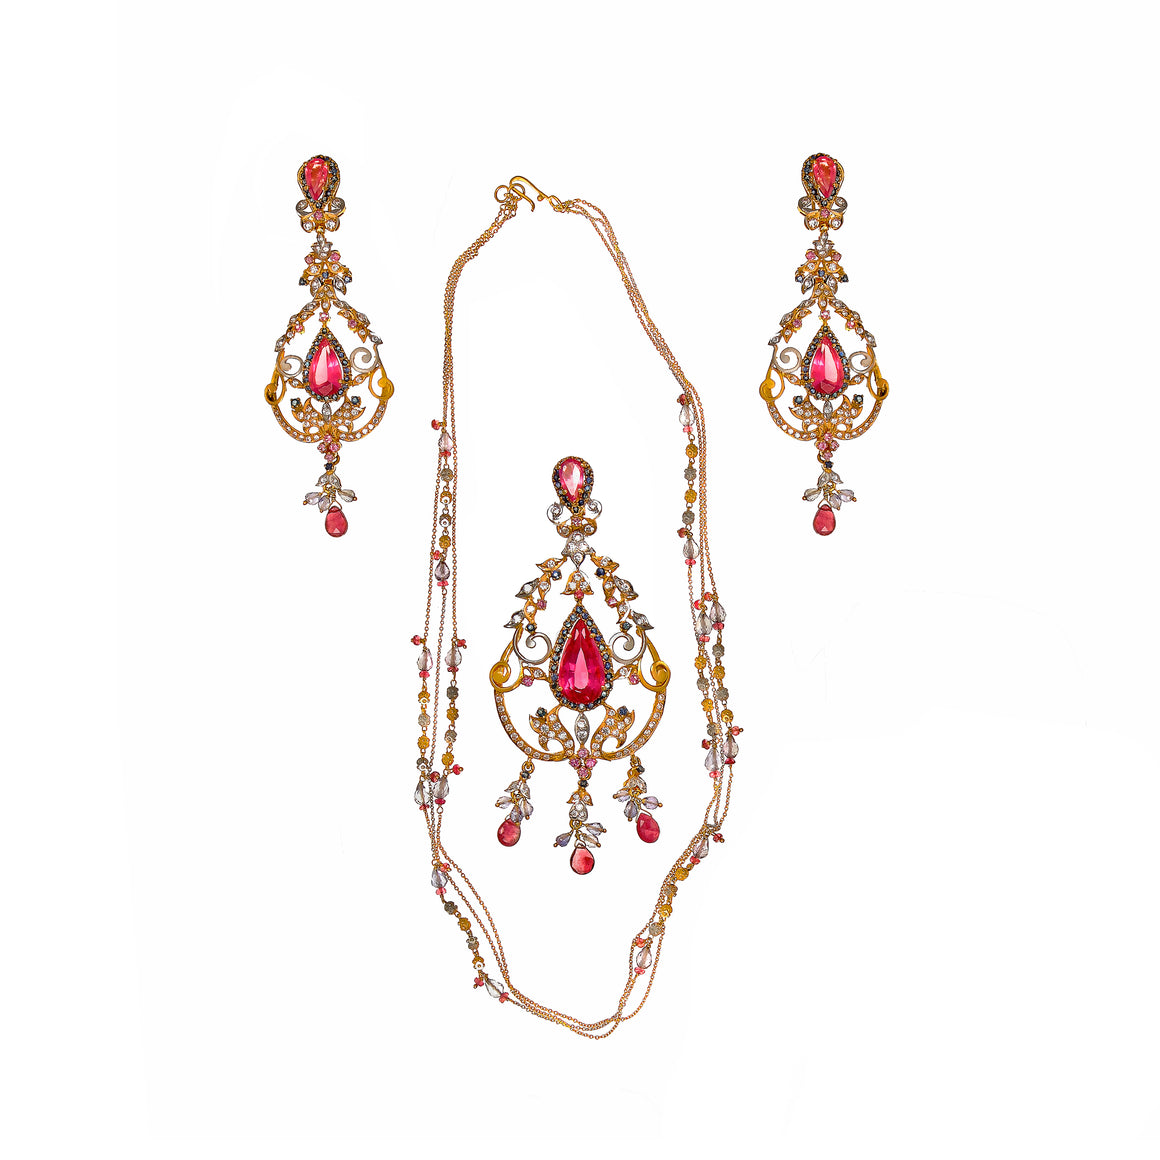 Glamorous Ruby and Tourmaline String Set made in 22k gold